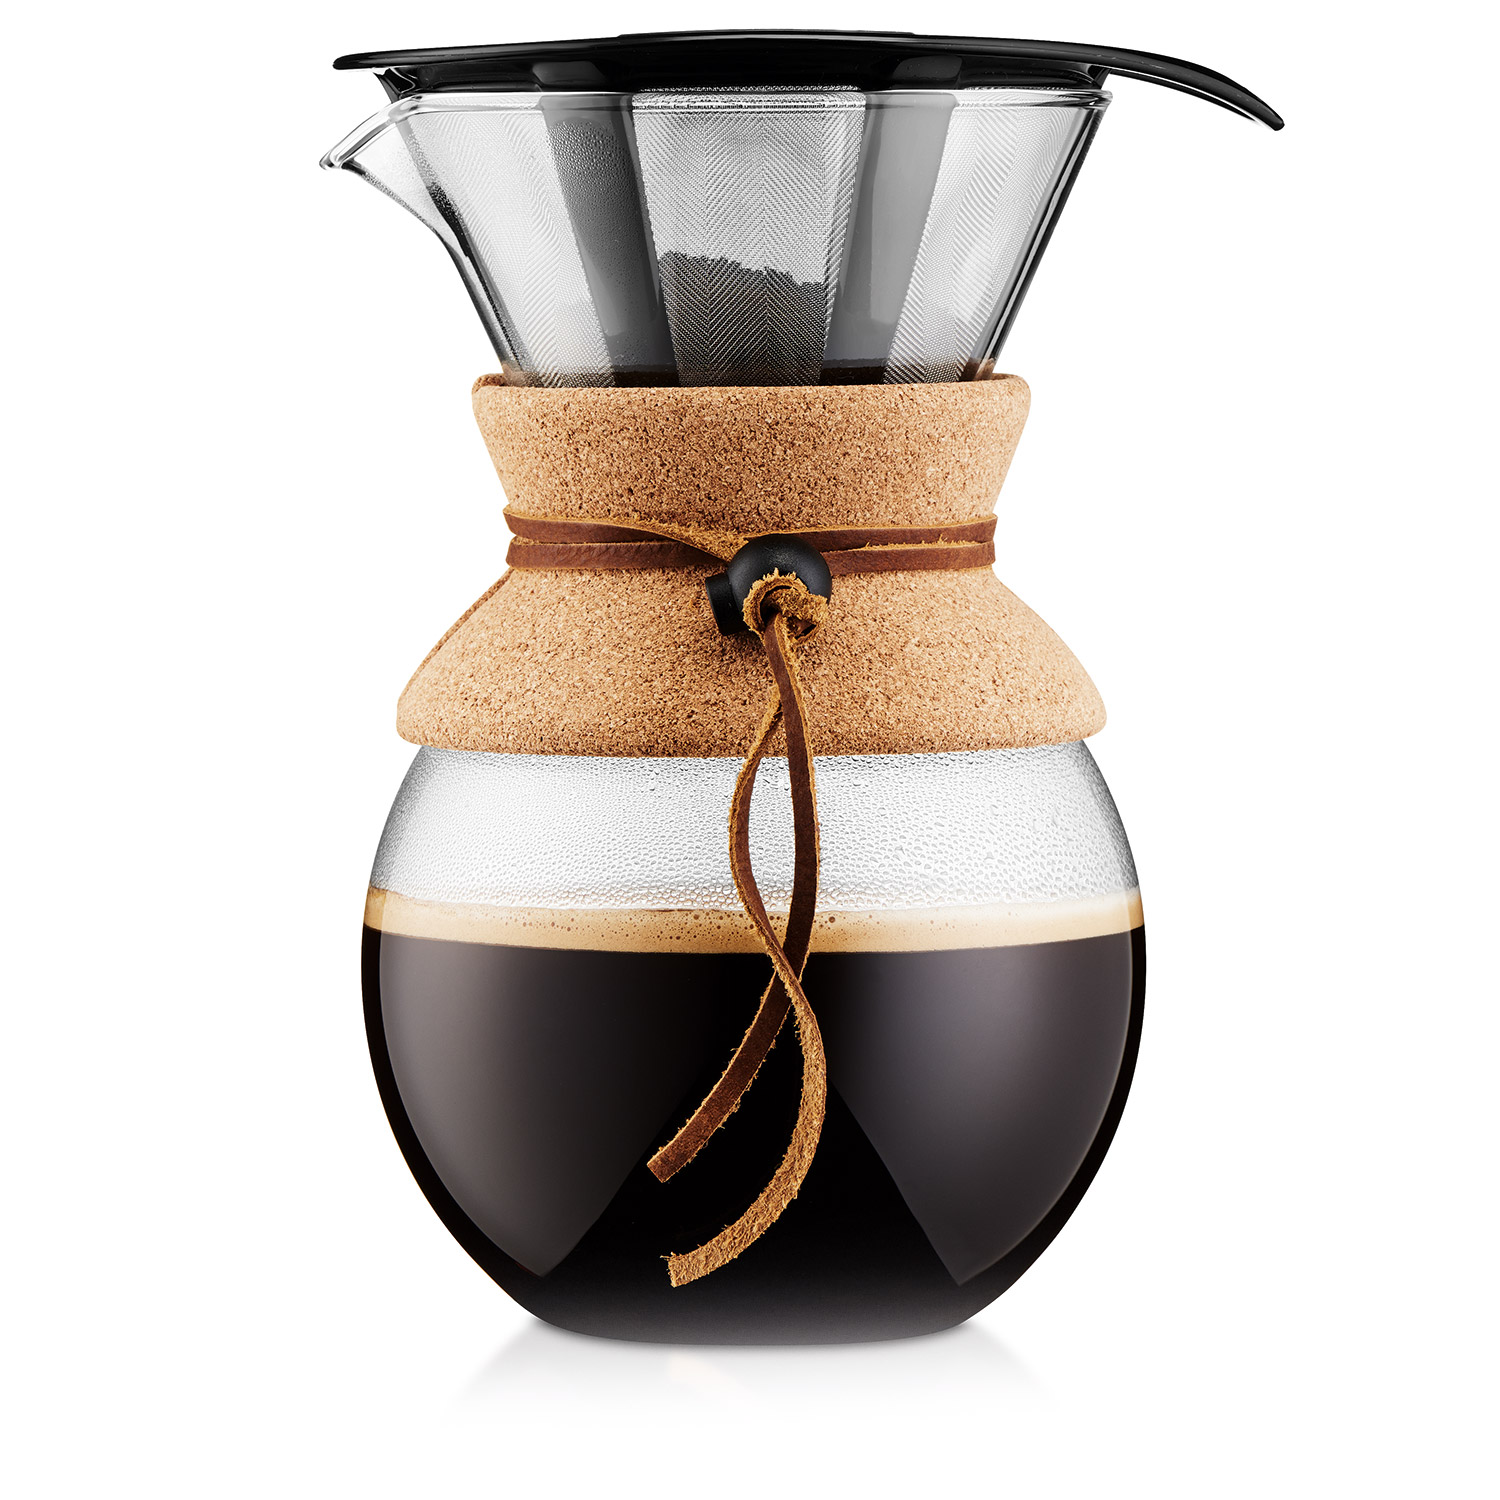 Pour over kaffebryggare 1 L